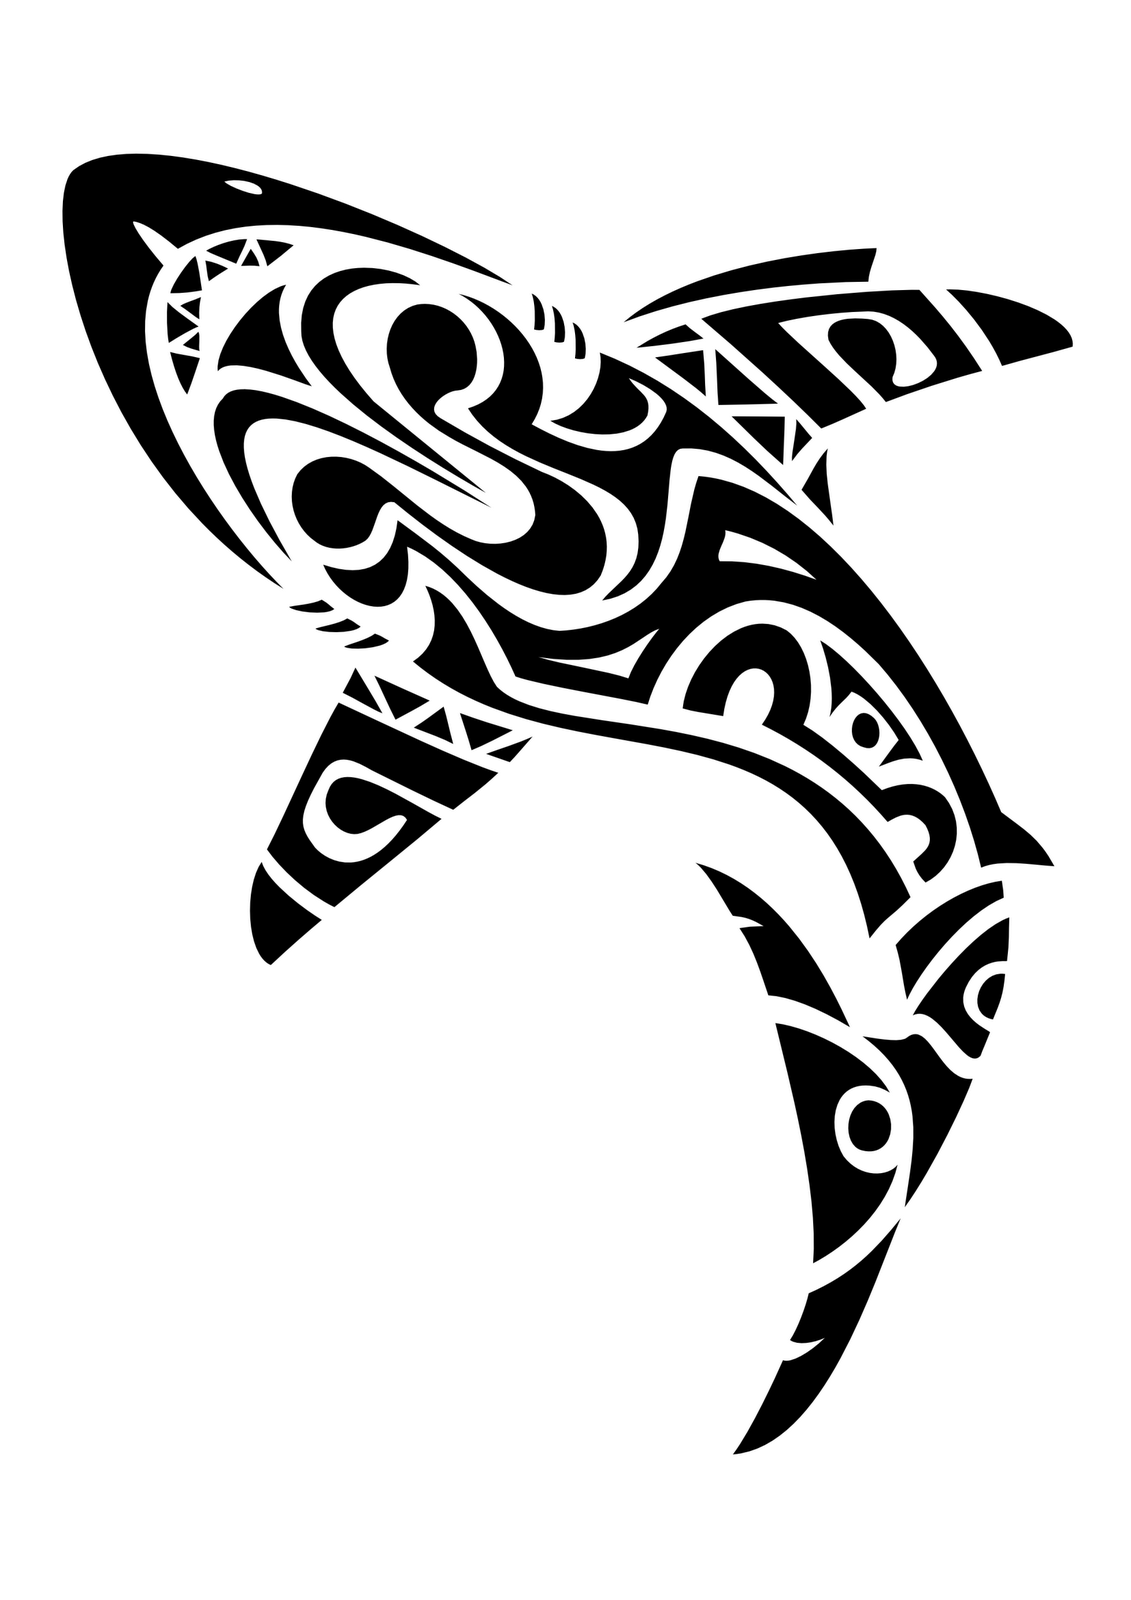 3852dc41c Shark Tattoos Designs, Ideas and Meaning | Tattoos For You